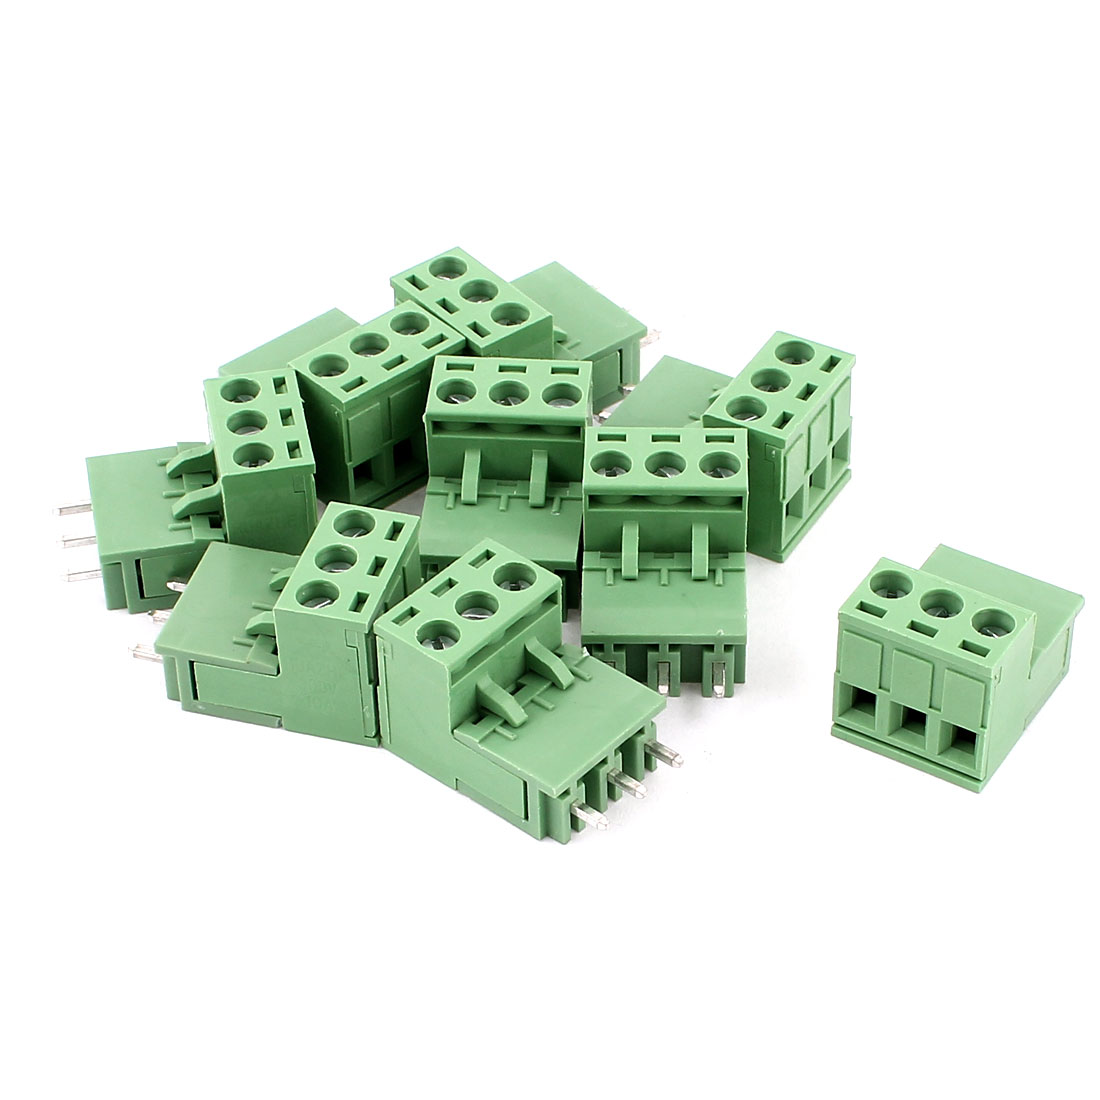 9 Pcs AC 300V 10A PCB Terminal Block Connector 5.08mm Pitch Green